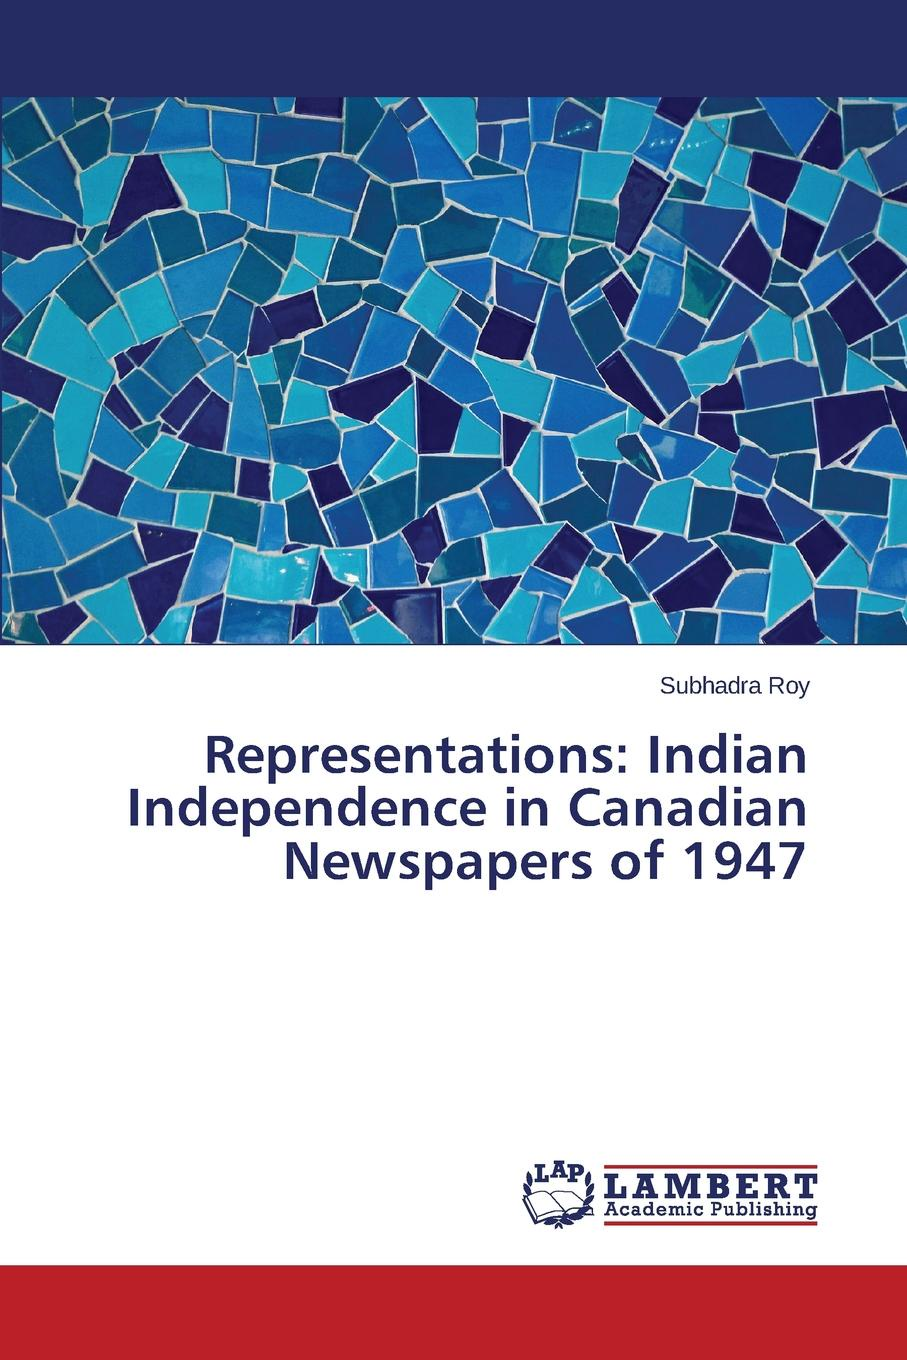 Roy Subhadra Representations. Indian Independence in Canadian Newspapers of 1947 geography of greater britain india canada australia africa the west indies classic reprint